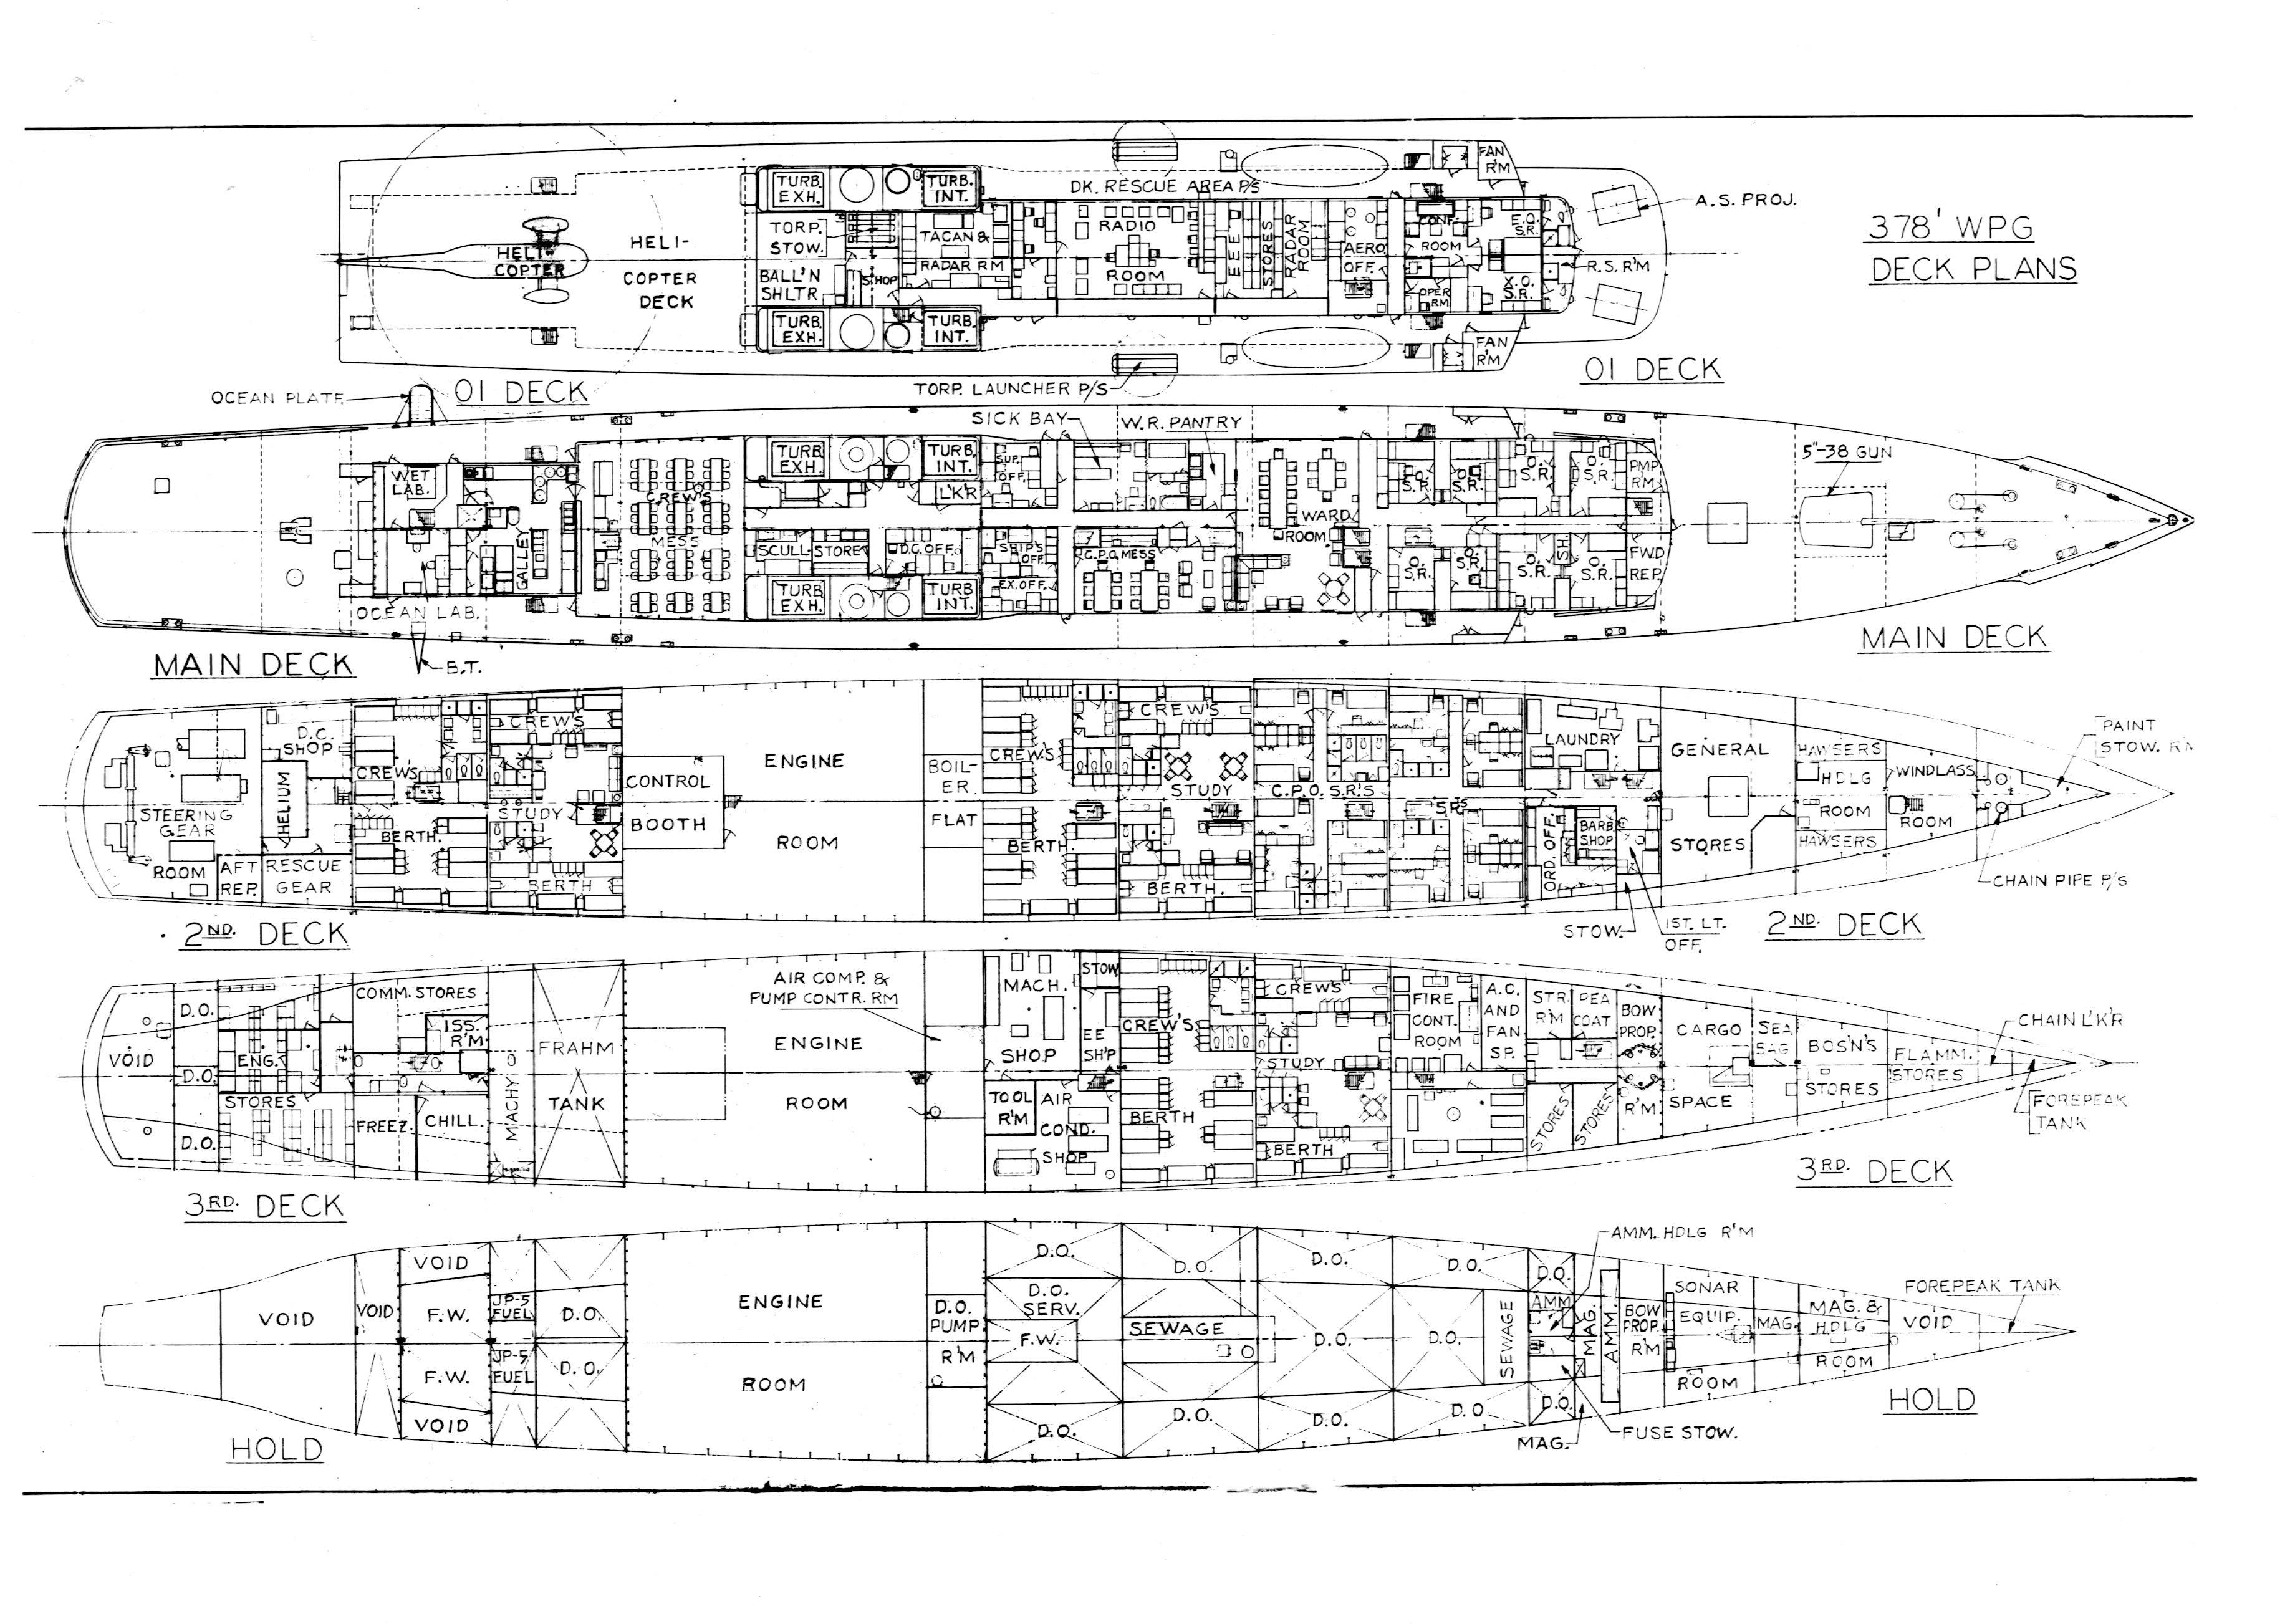 Free boat blueprints bing images shipping pinterest boating free boat blueprints bing images malvernweather Image collections